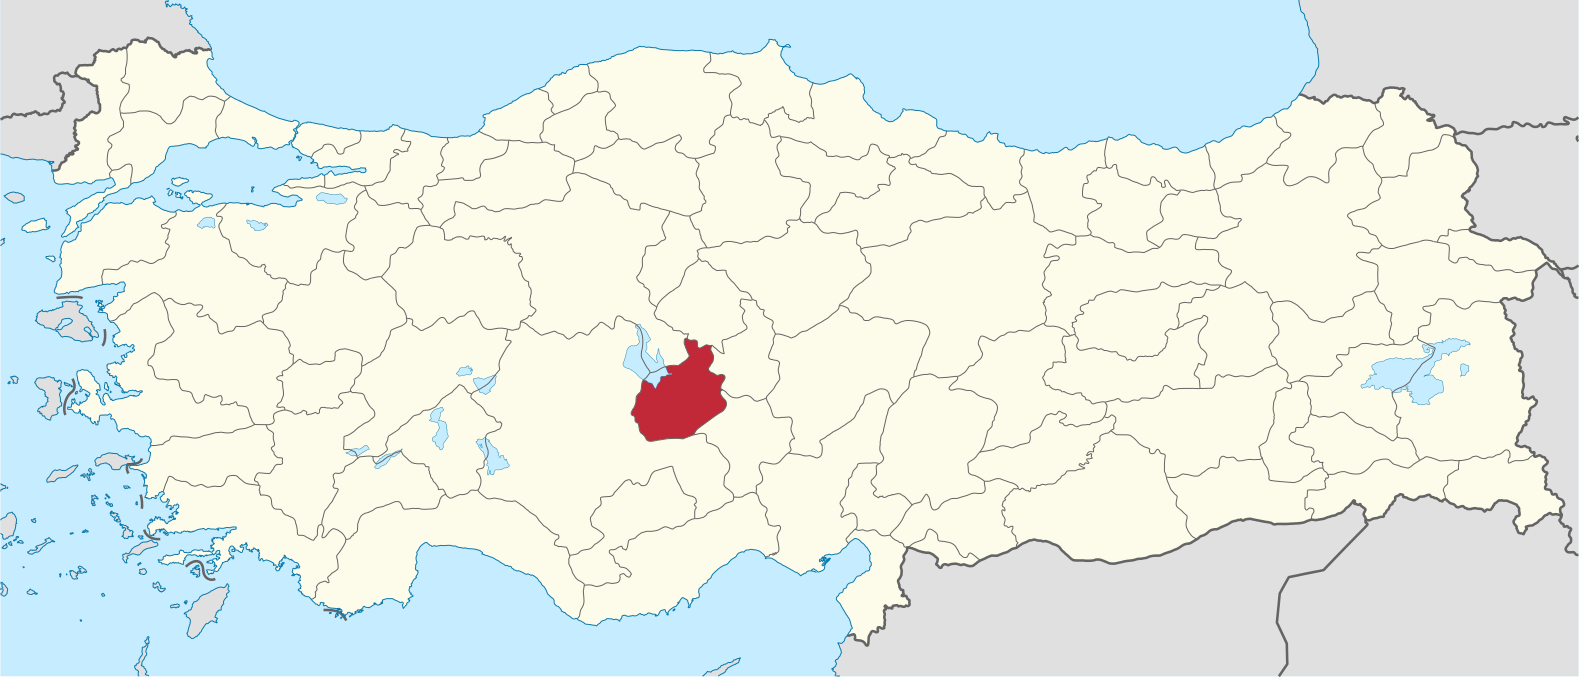 Aksaray_in_Turkey.png